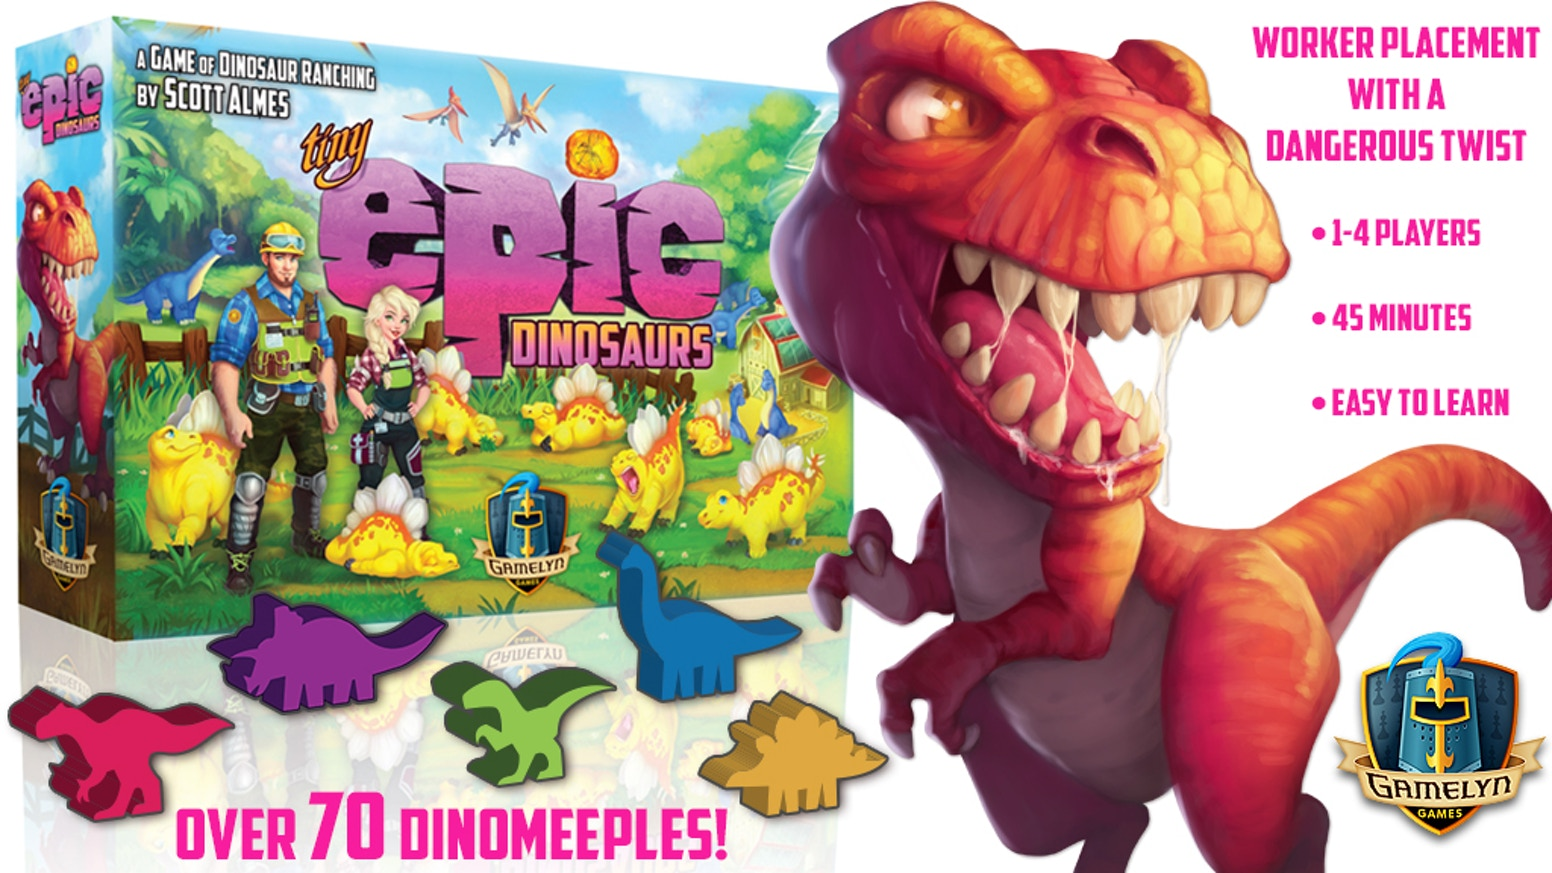 Tiny Epic Dinosaurs by Gamelyn Games — Kickstarter